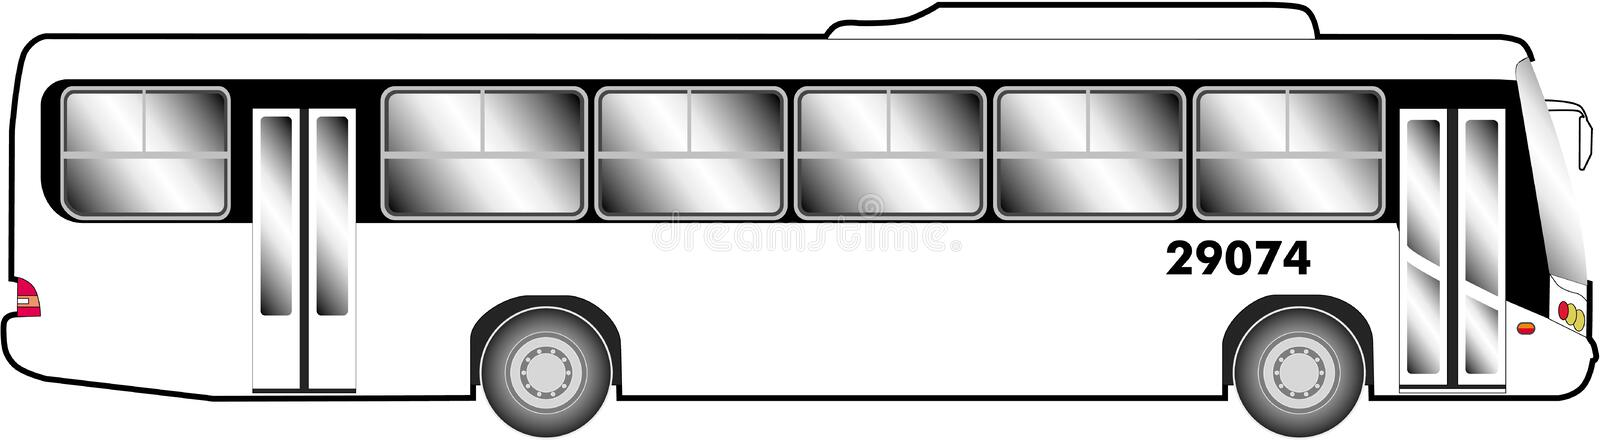 Linea arte 03 del bus illustrazione di stock